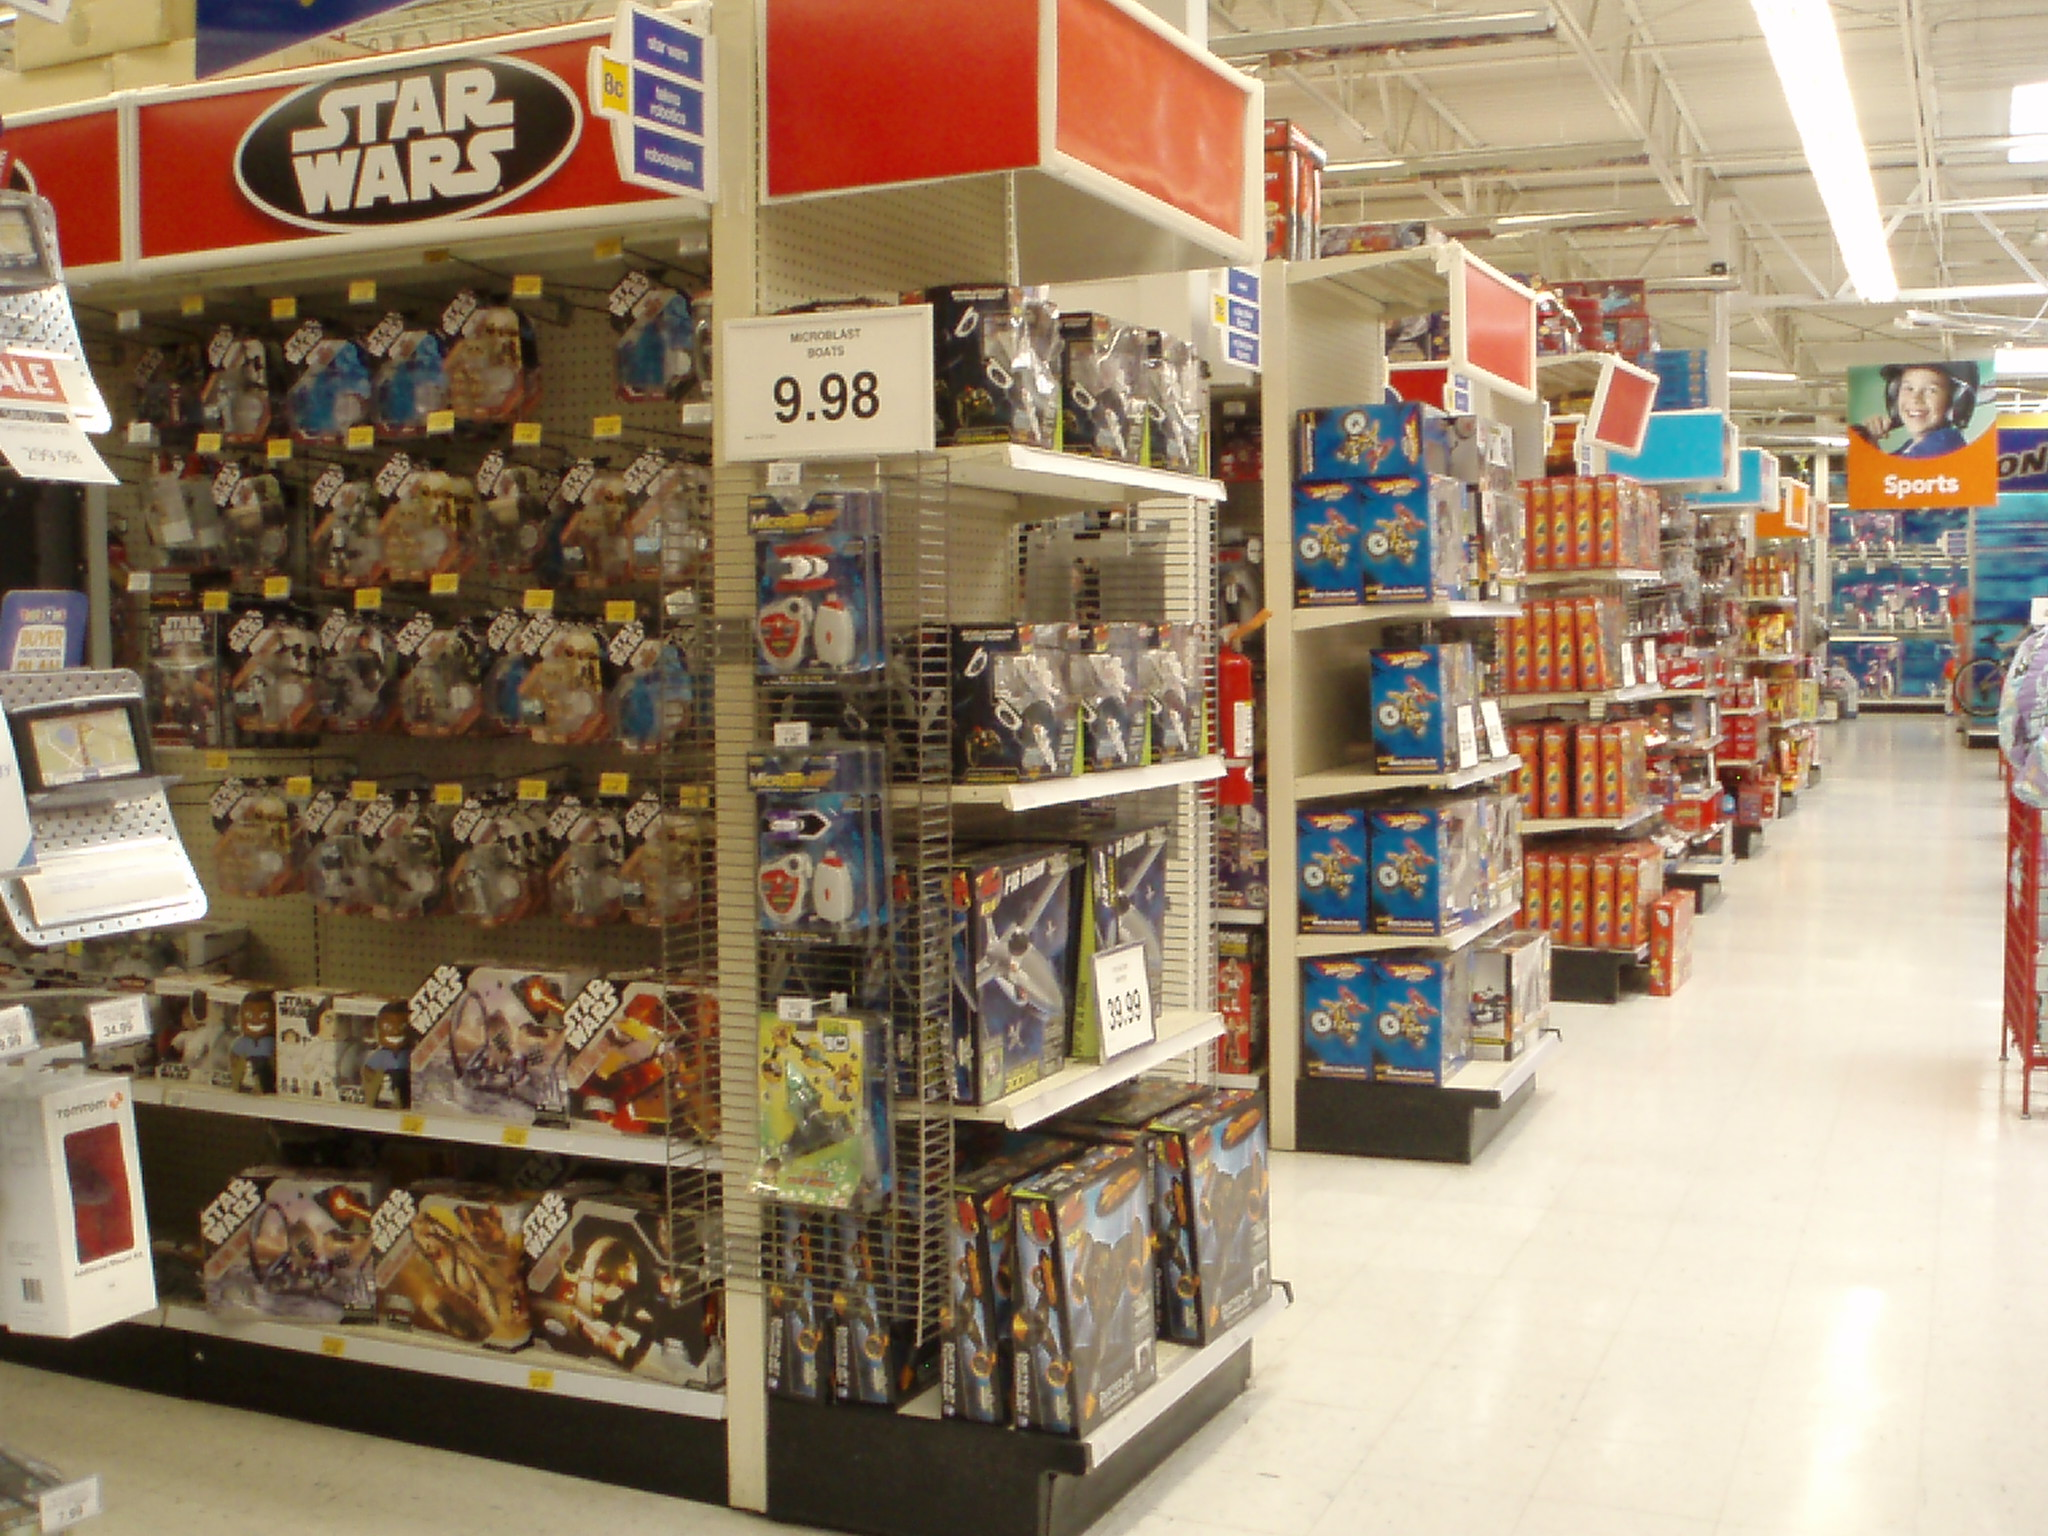 Toy Stores For Boys : What kids learn at toys 'r us sociological images